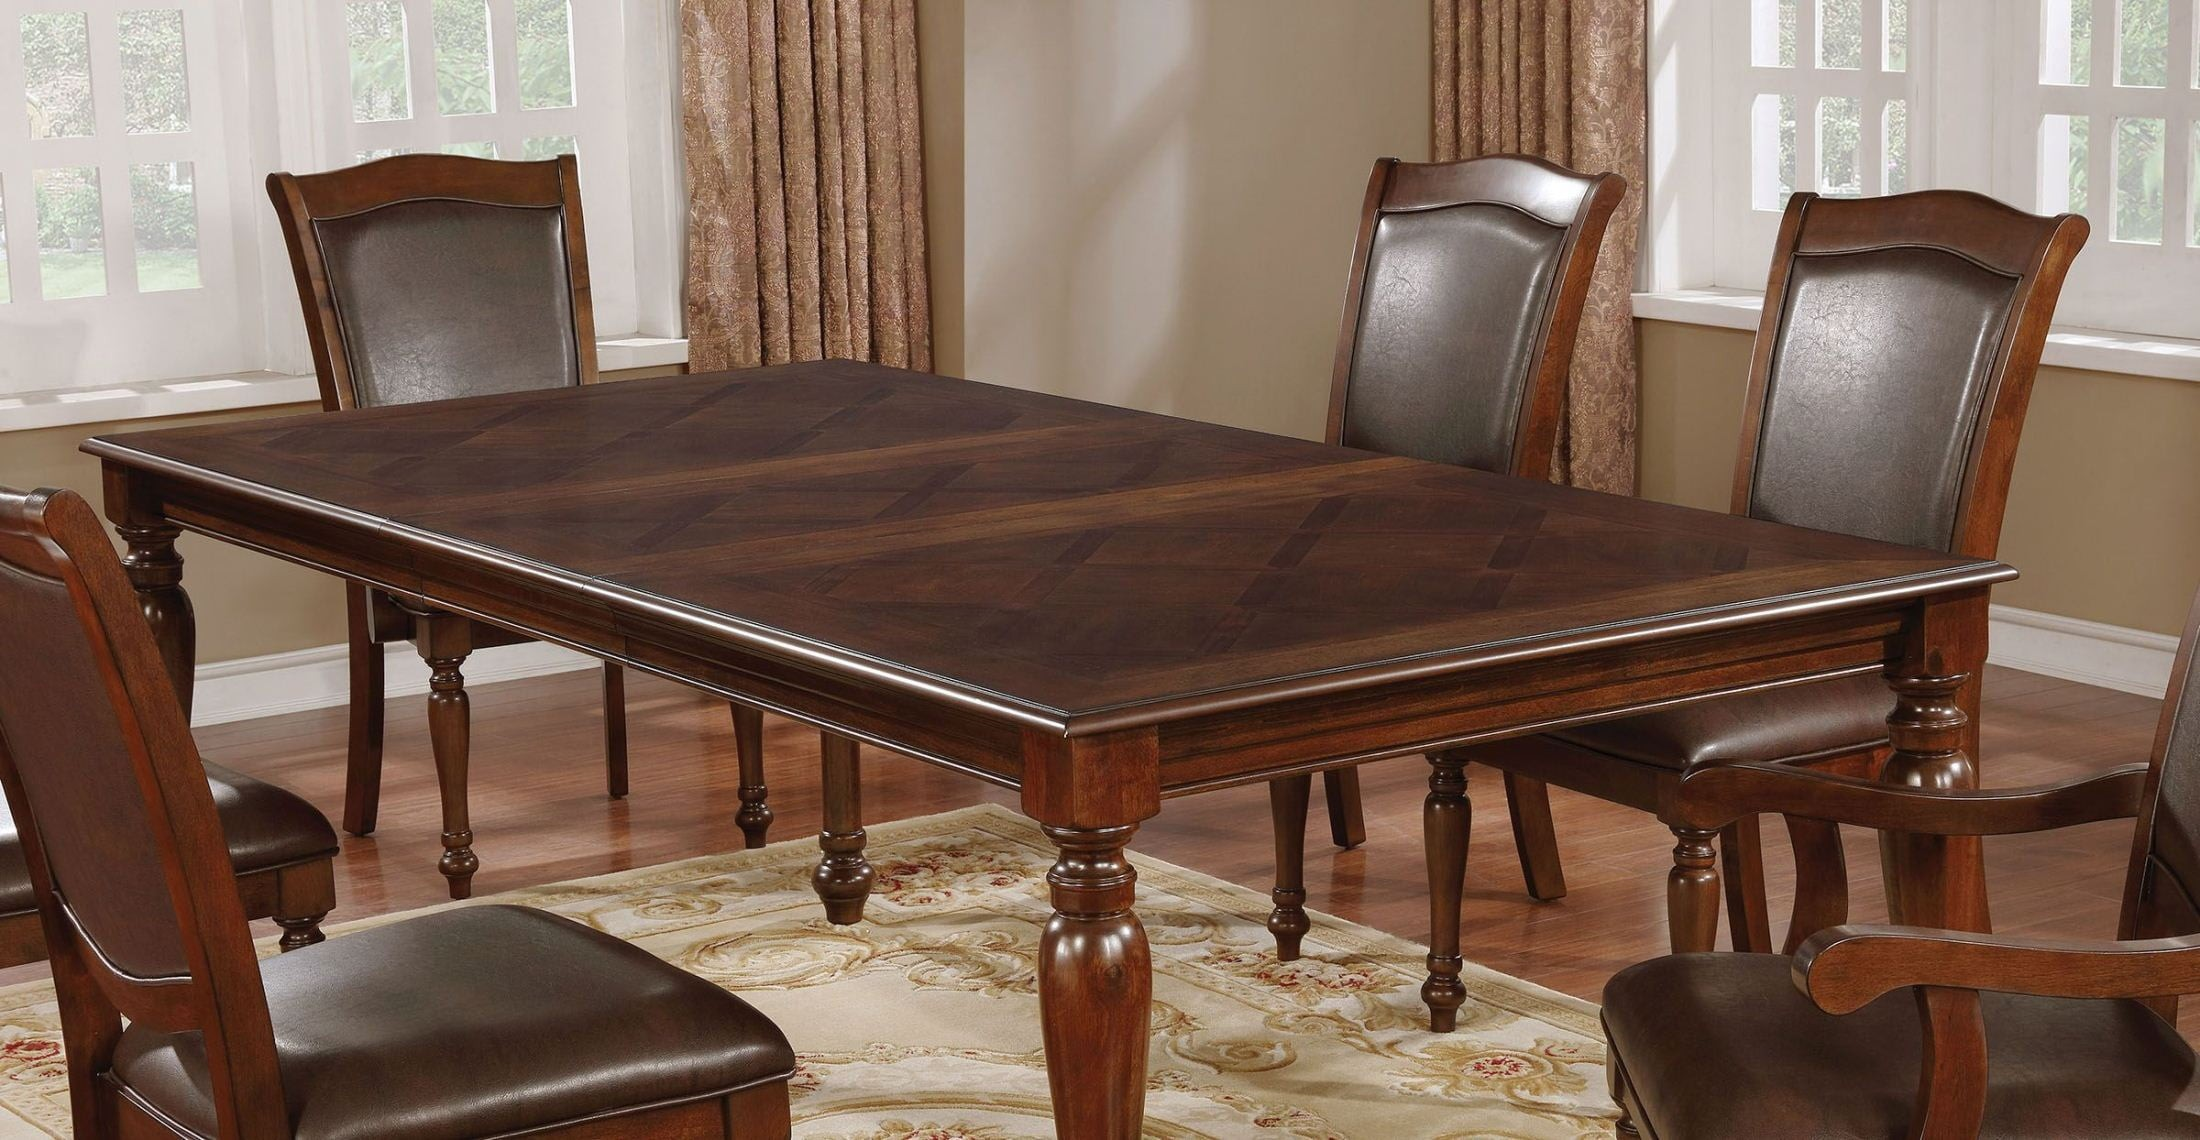 ca828a02c75d Furniture of America Sylvana Brown Cherry Dining Table - Sylvana ...